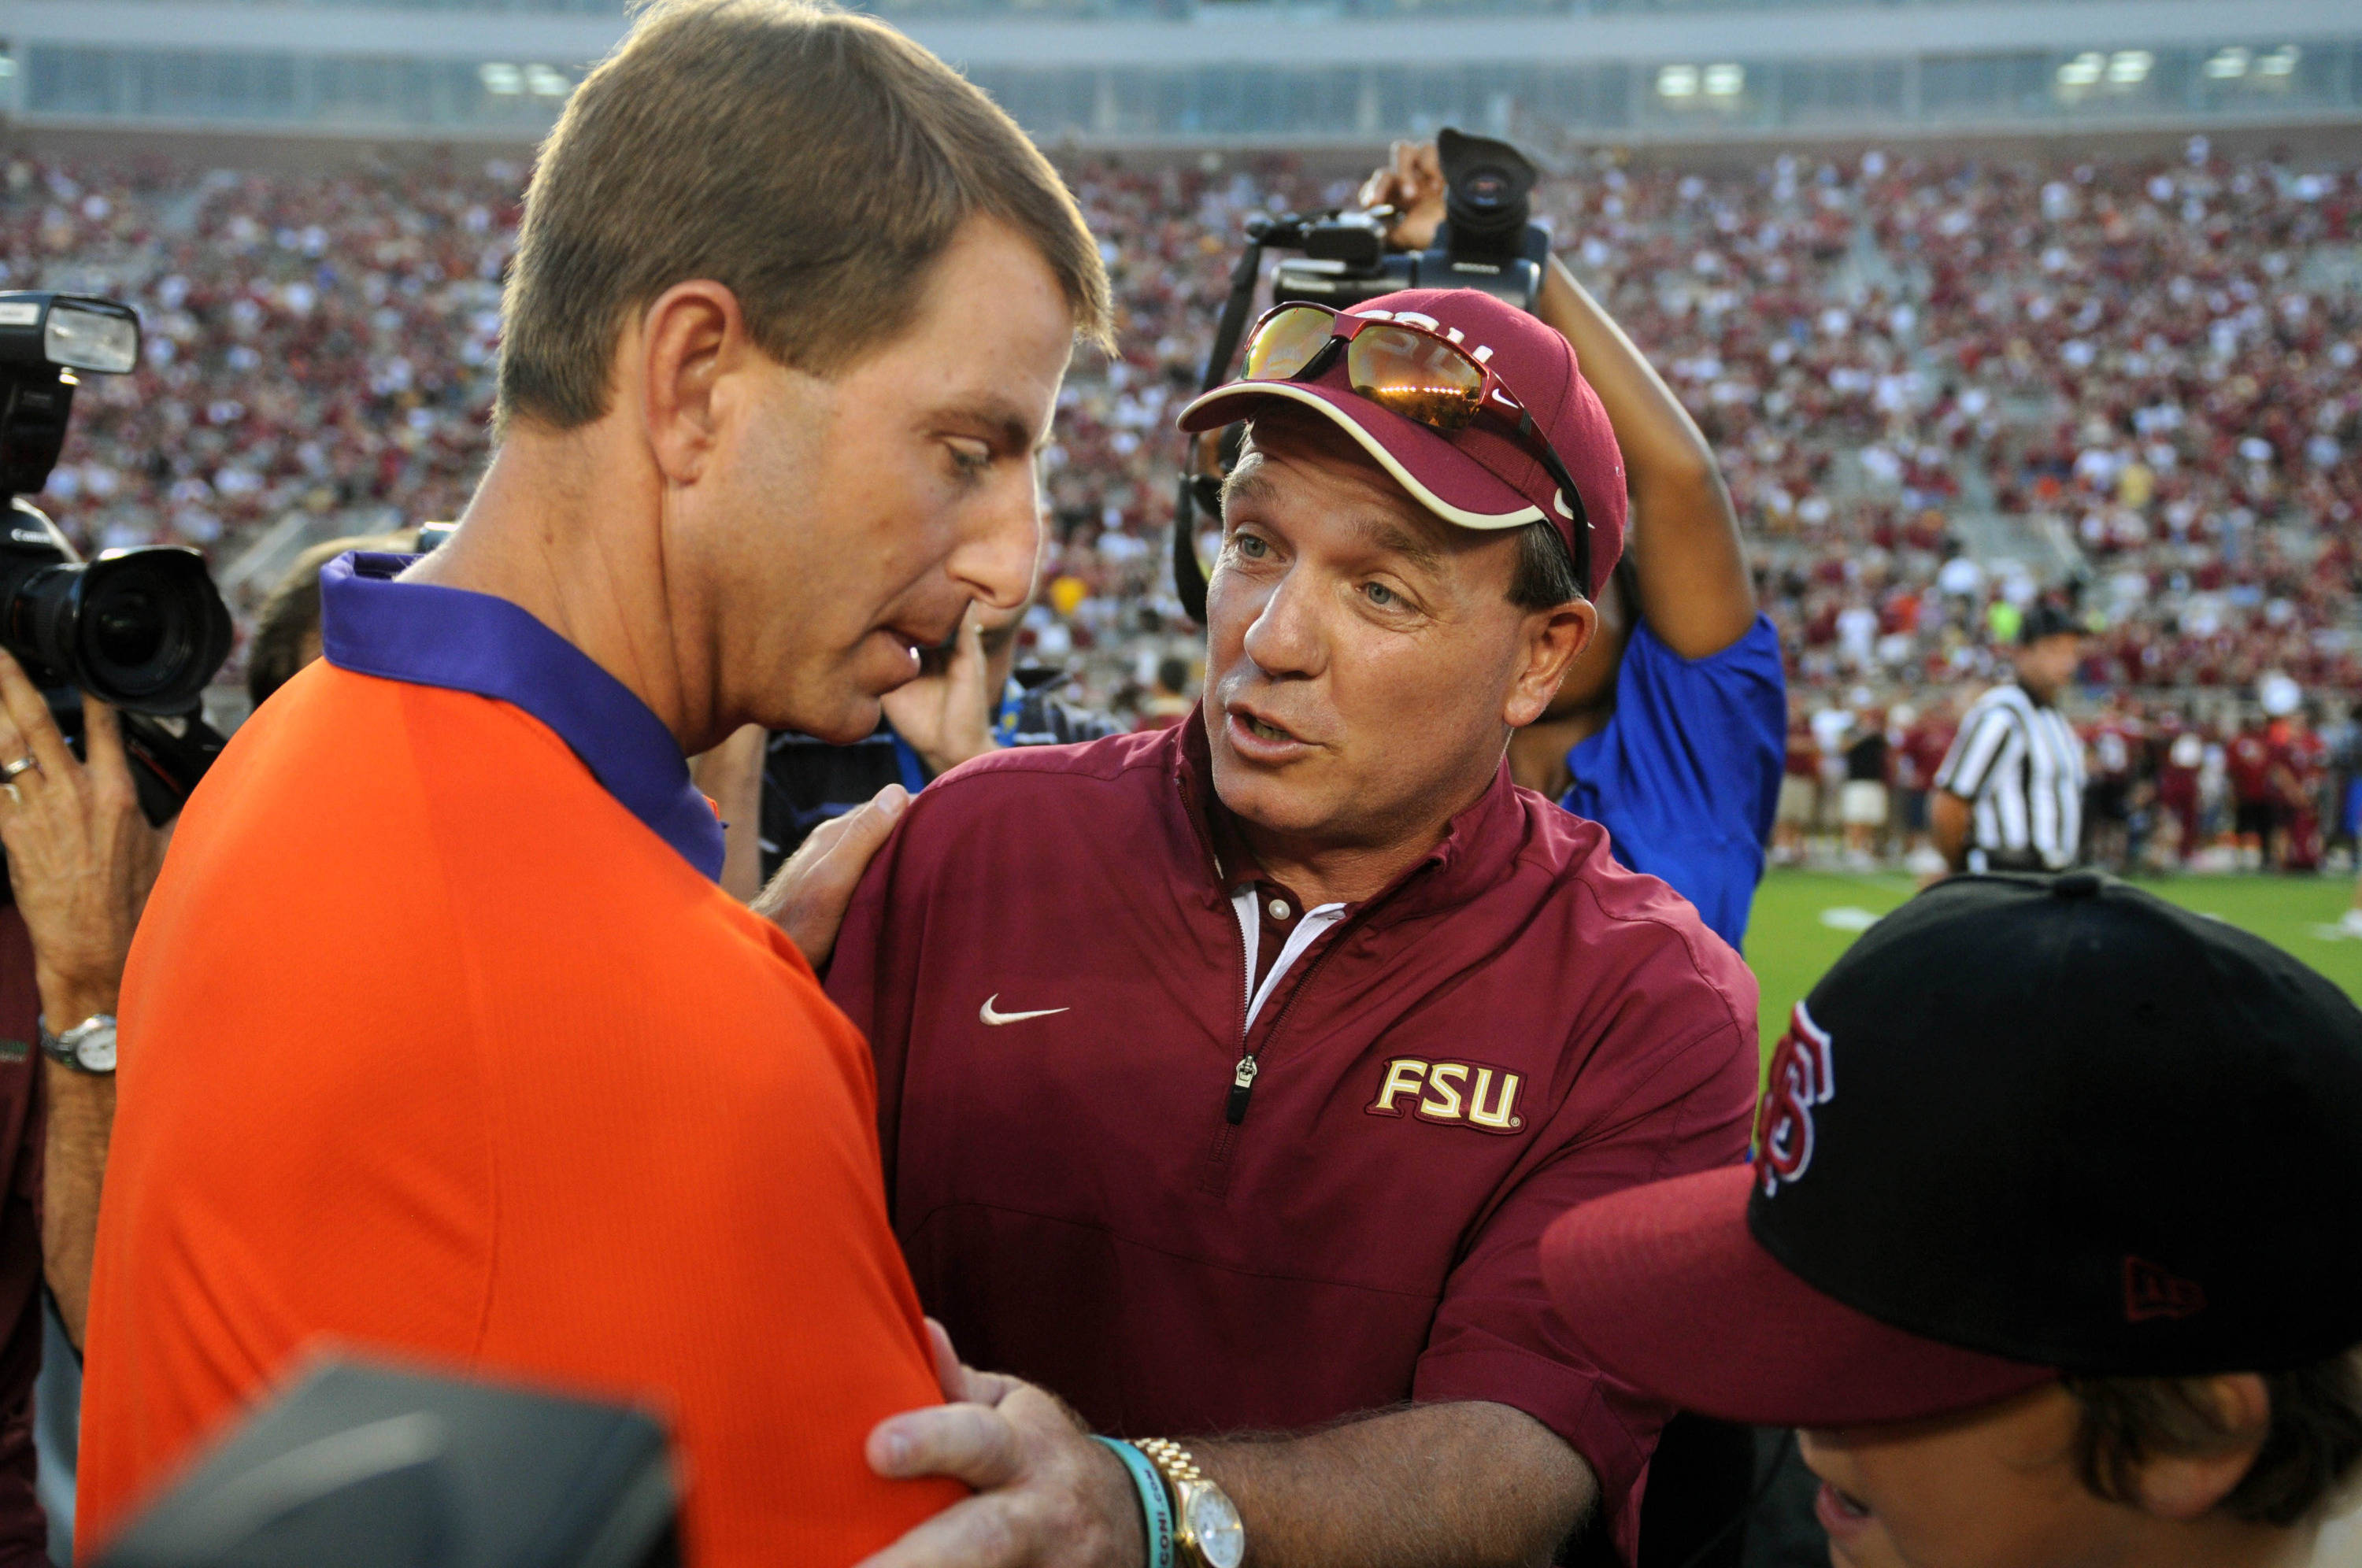 Sept 22, 2012;  Tallahassee, Florida, USA; Florida State Seminoles head coach Jimbo Fisher meets with Clemson Tigers head coach Dabo Swinney before the game at Doak Campbell Stadium. Mandatory Credit: Melina Vastola-USA TODAY Sports